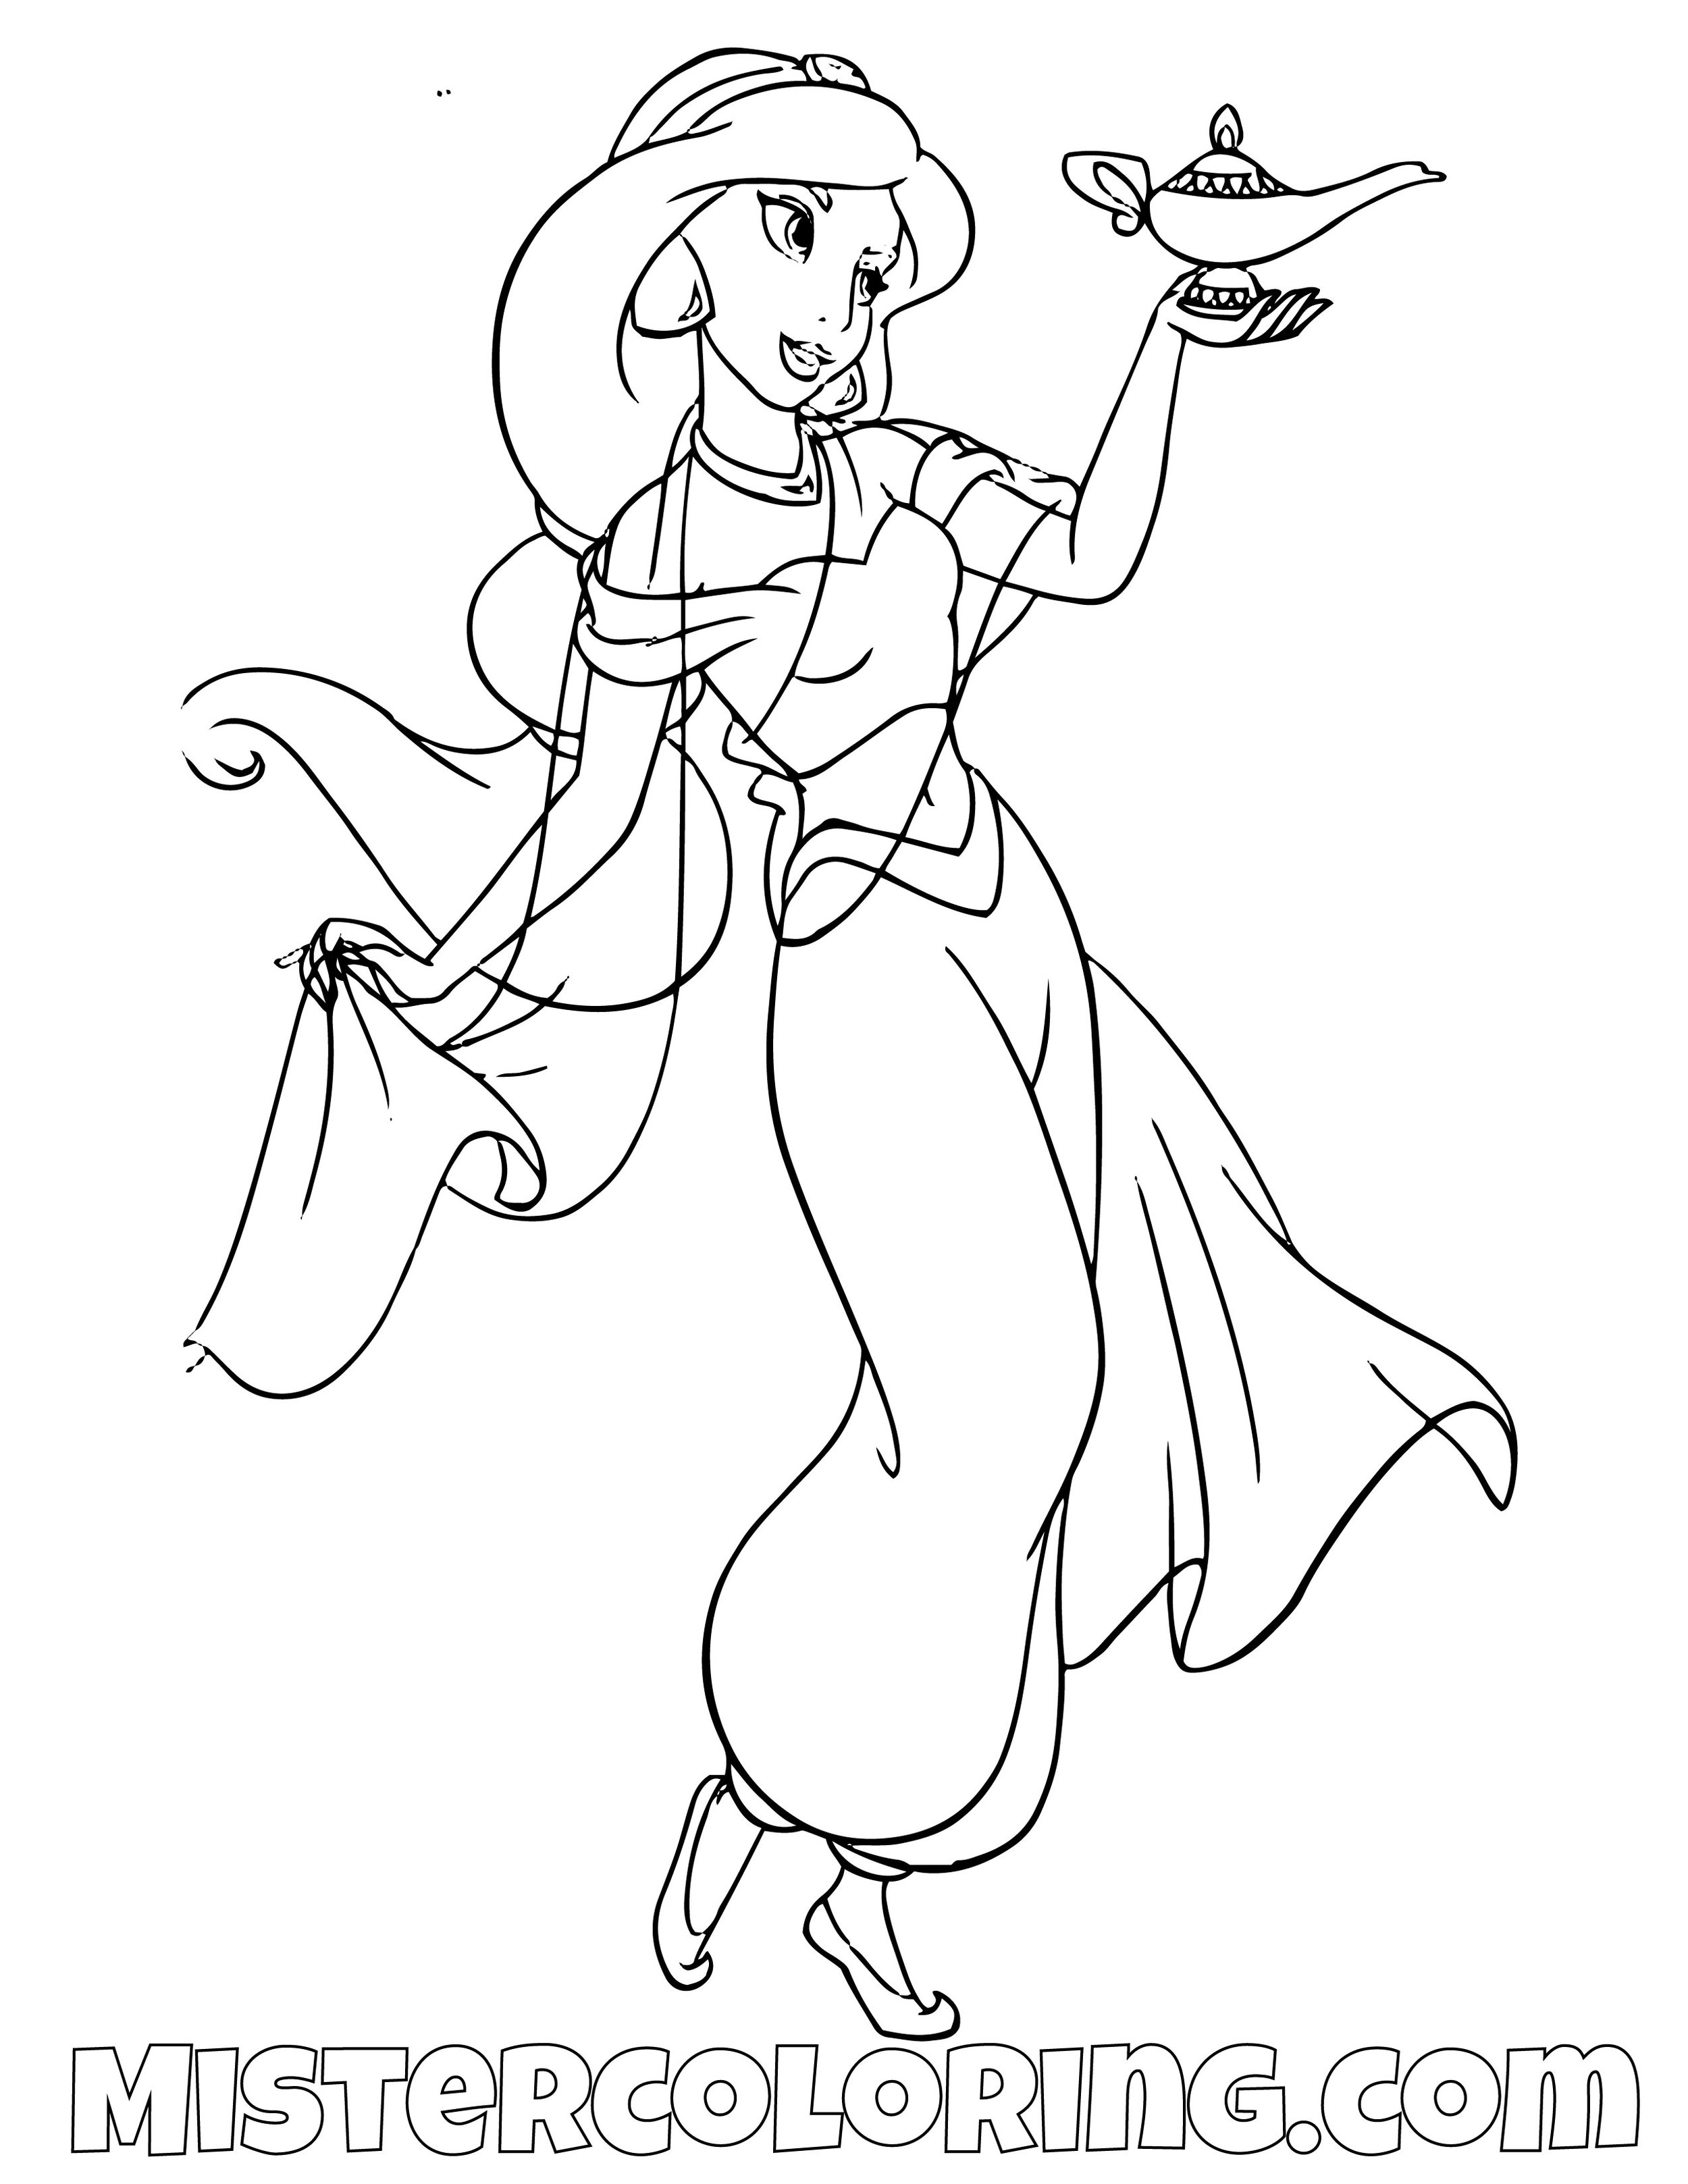 Princess Jasmine Coloring Page Printable | Disney princess ... | 1294x1000